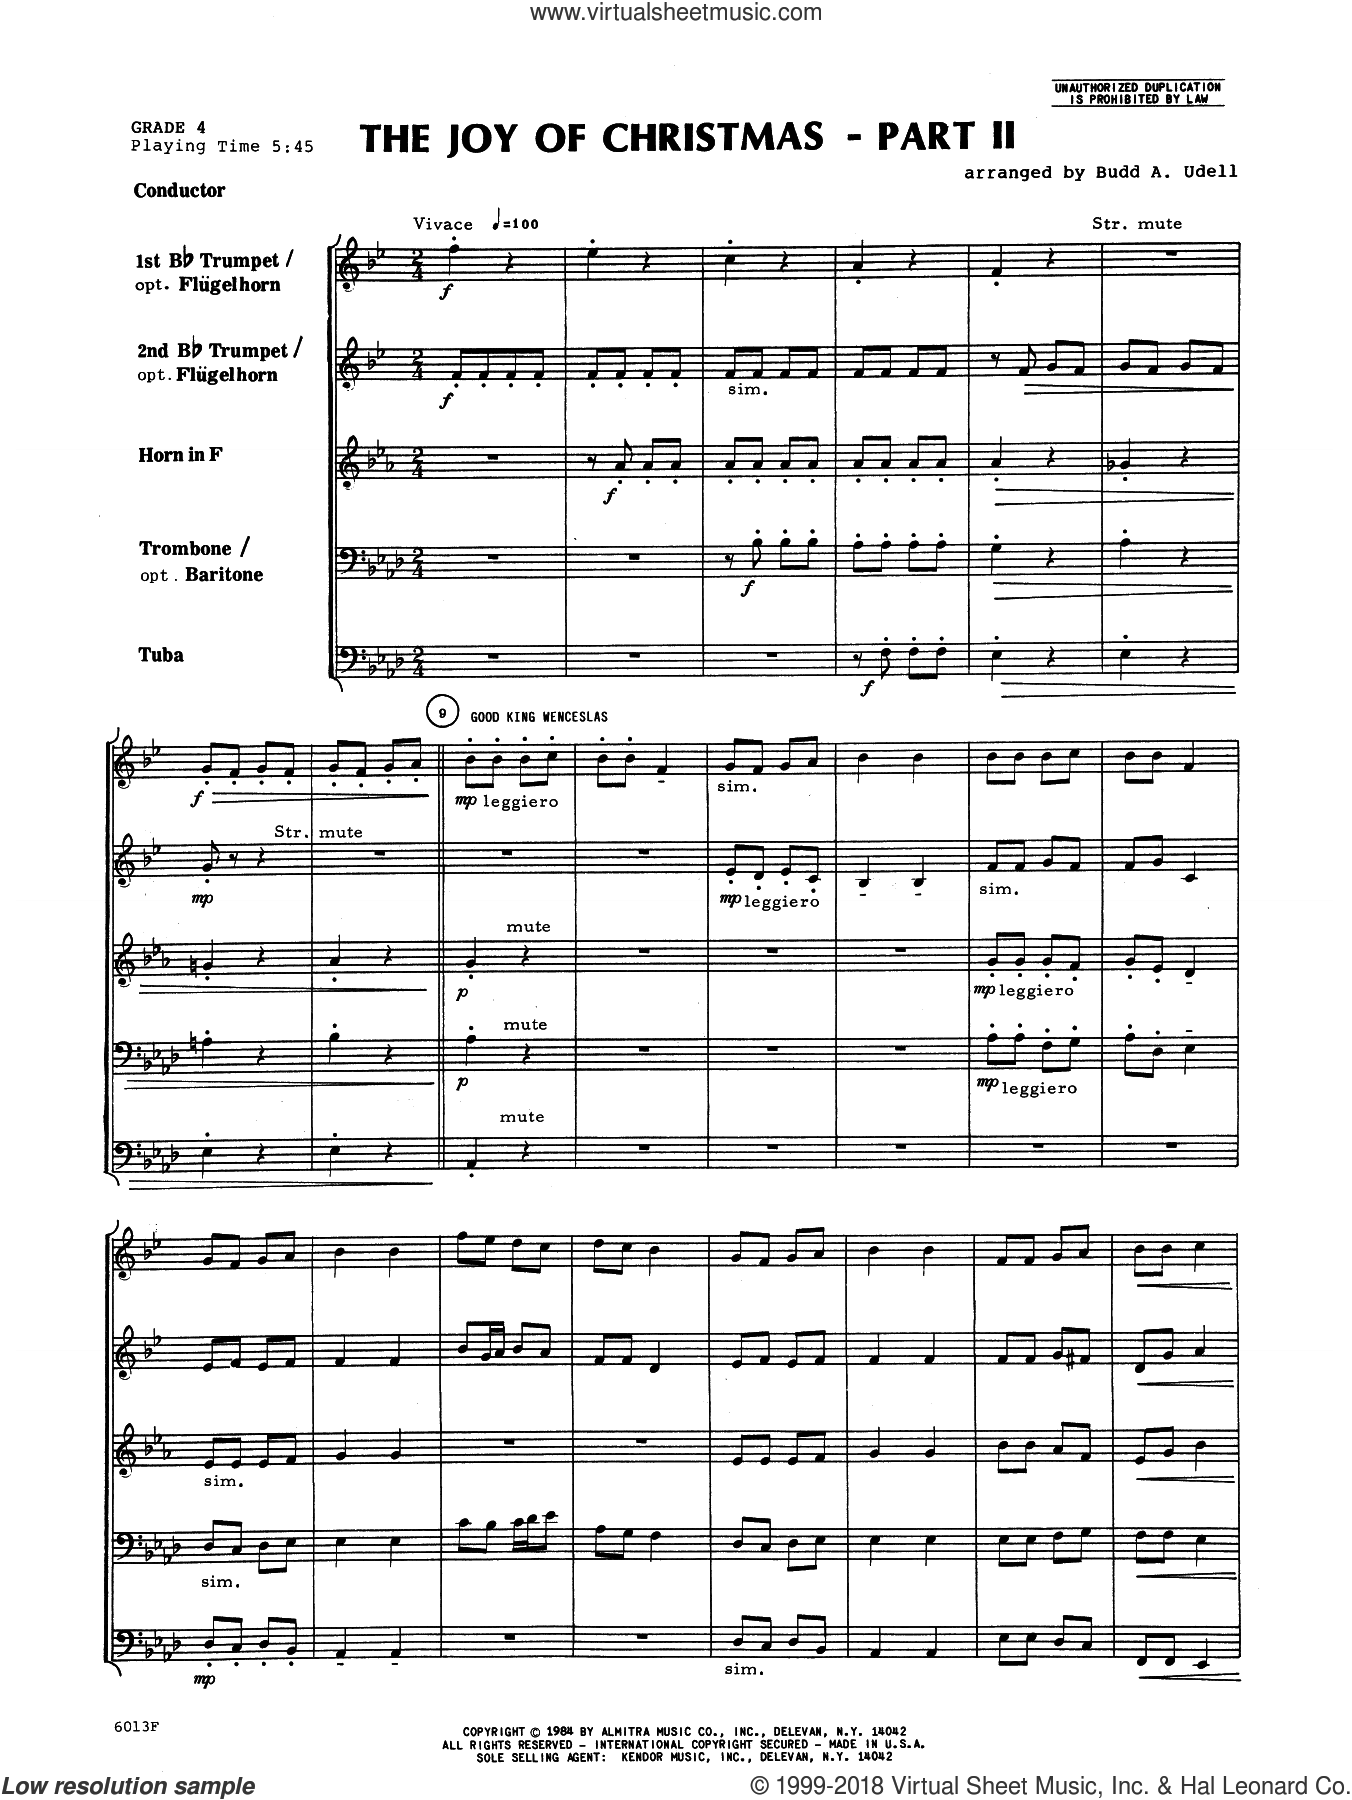 The Joy of Christmas Part 2 (COMPLETE) sheet music for brass quintet by Budd A. Udell, intermediate skill level